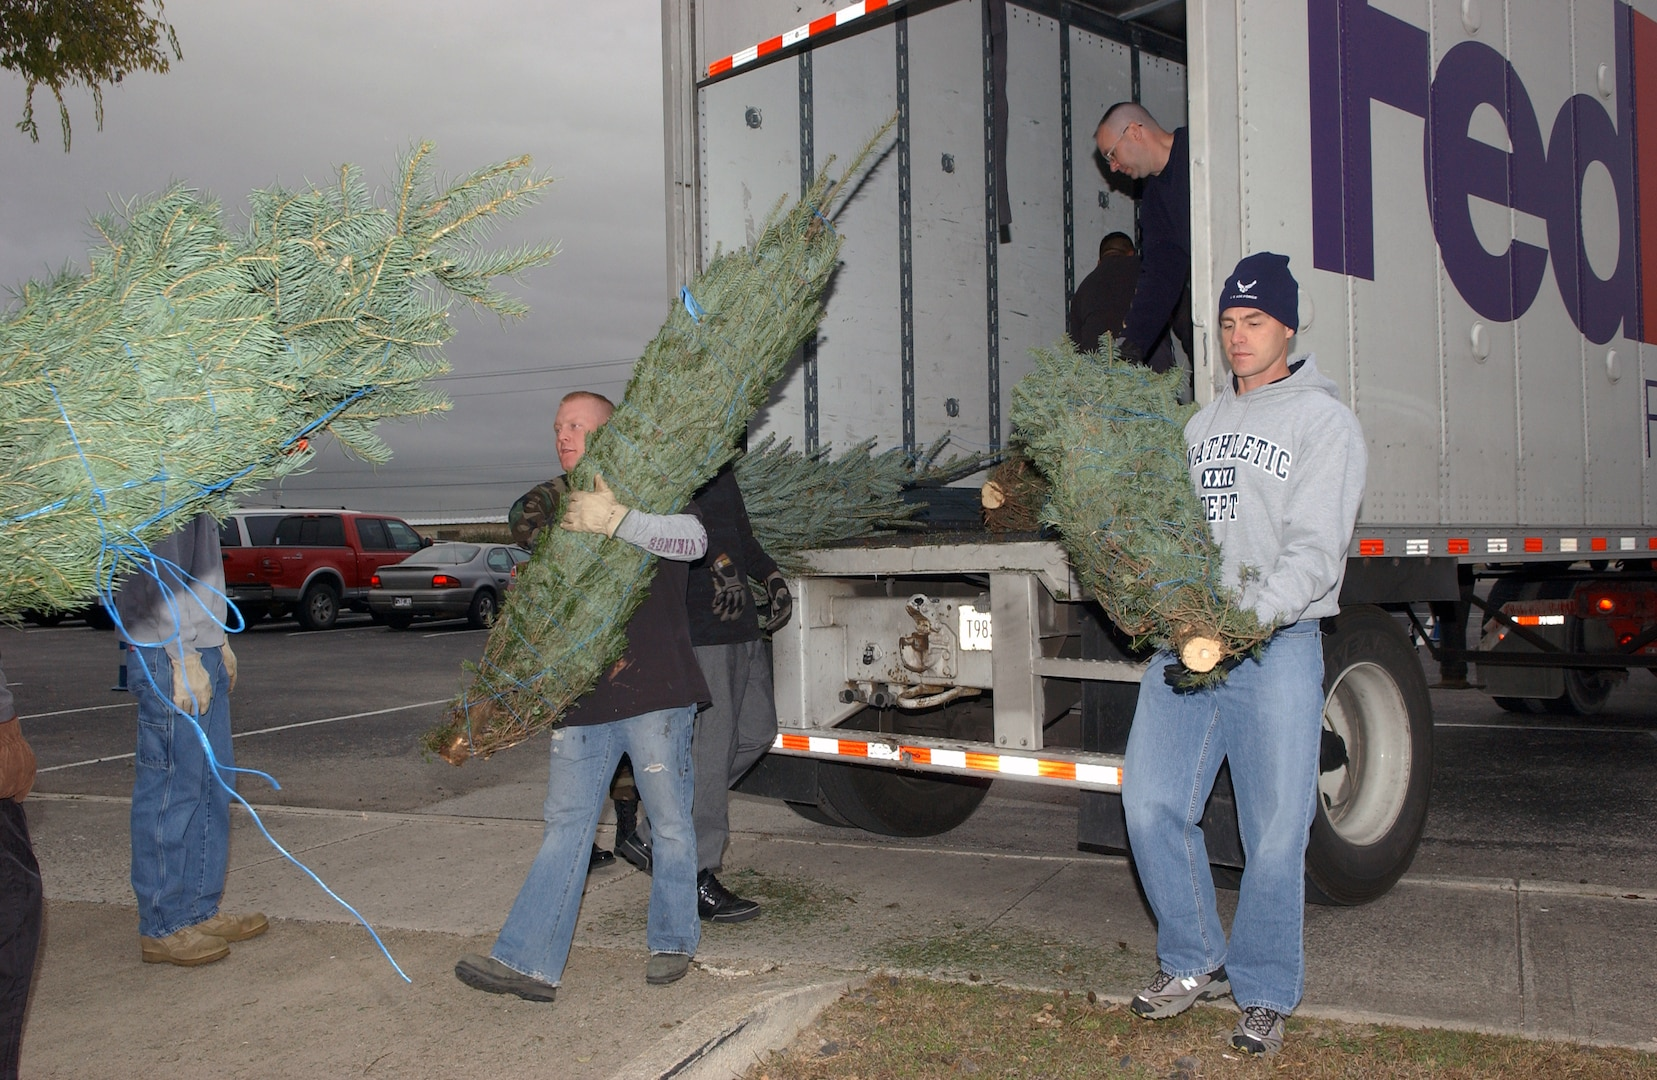 Volunteers from various squadrons on Lackland Air Force Base, Texas, unload a special delivery from FedEx on Dec. 6 - live Christmas trees. An additional 145 trees will be delivered Dec. 12. FedEx and the Christmas SPIRIT Foundation teamed together to provide approximately 20,000 trees to more than 30 military installations this year, including two in Texas, Fort Hood and Lackland AFB. (USAF photo by Alan Boedeker)